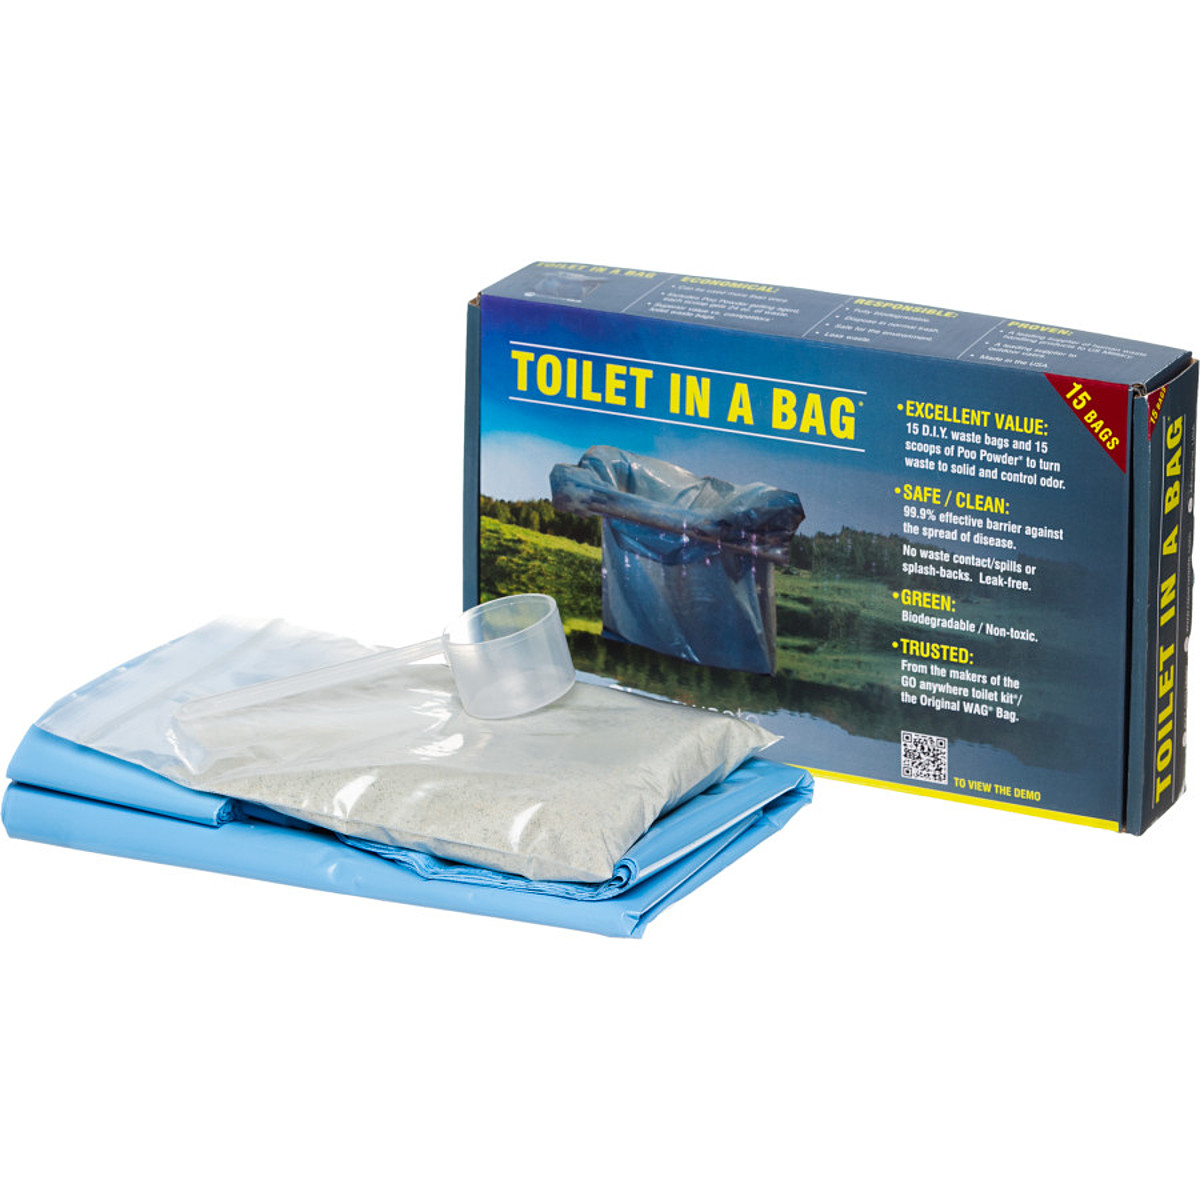 Cleanwaste Toilet in a Bag